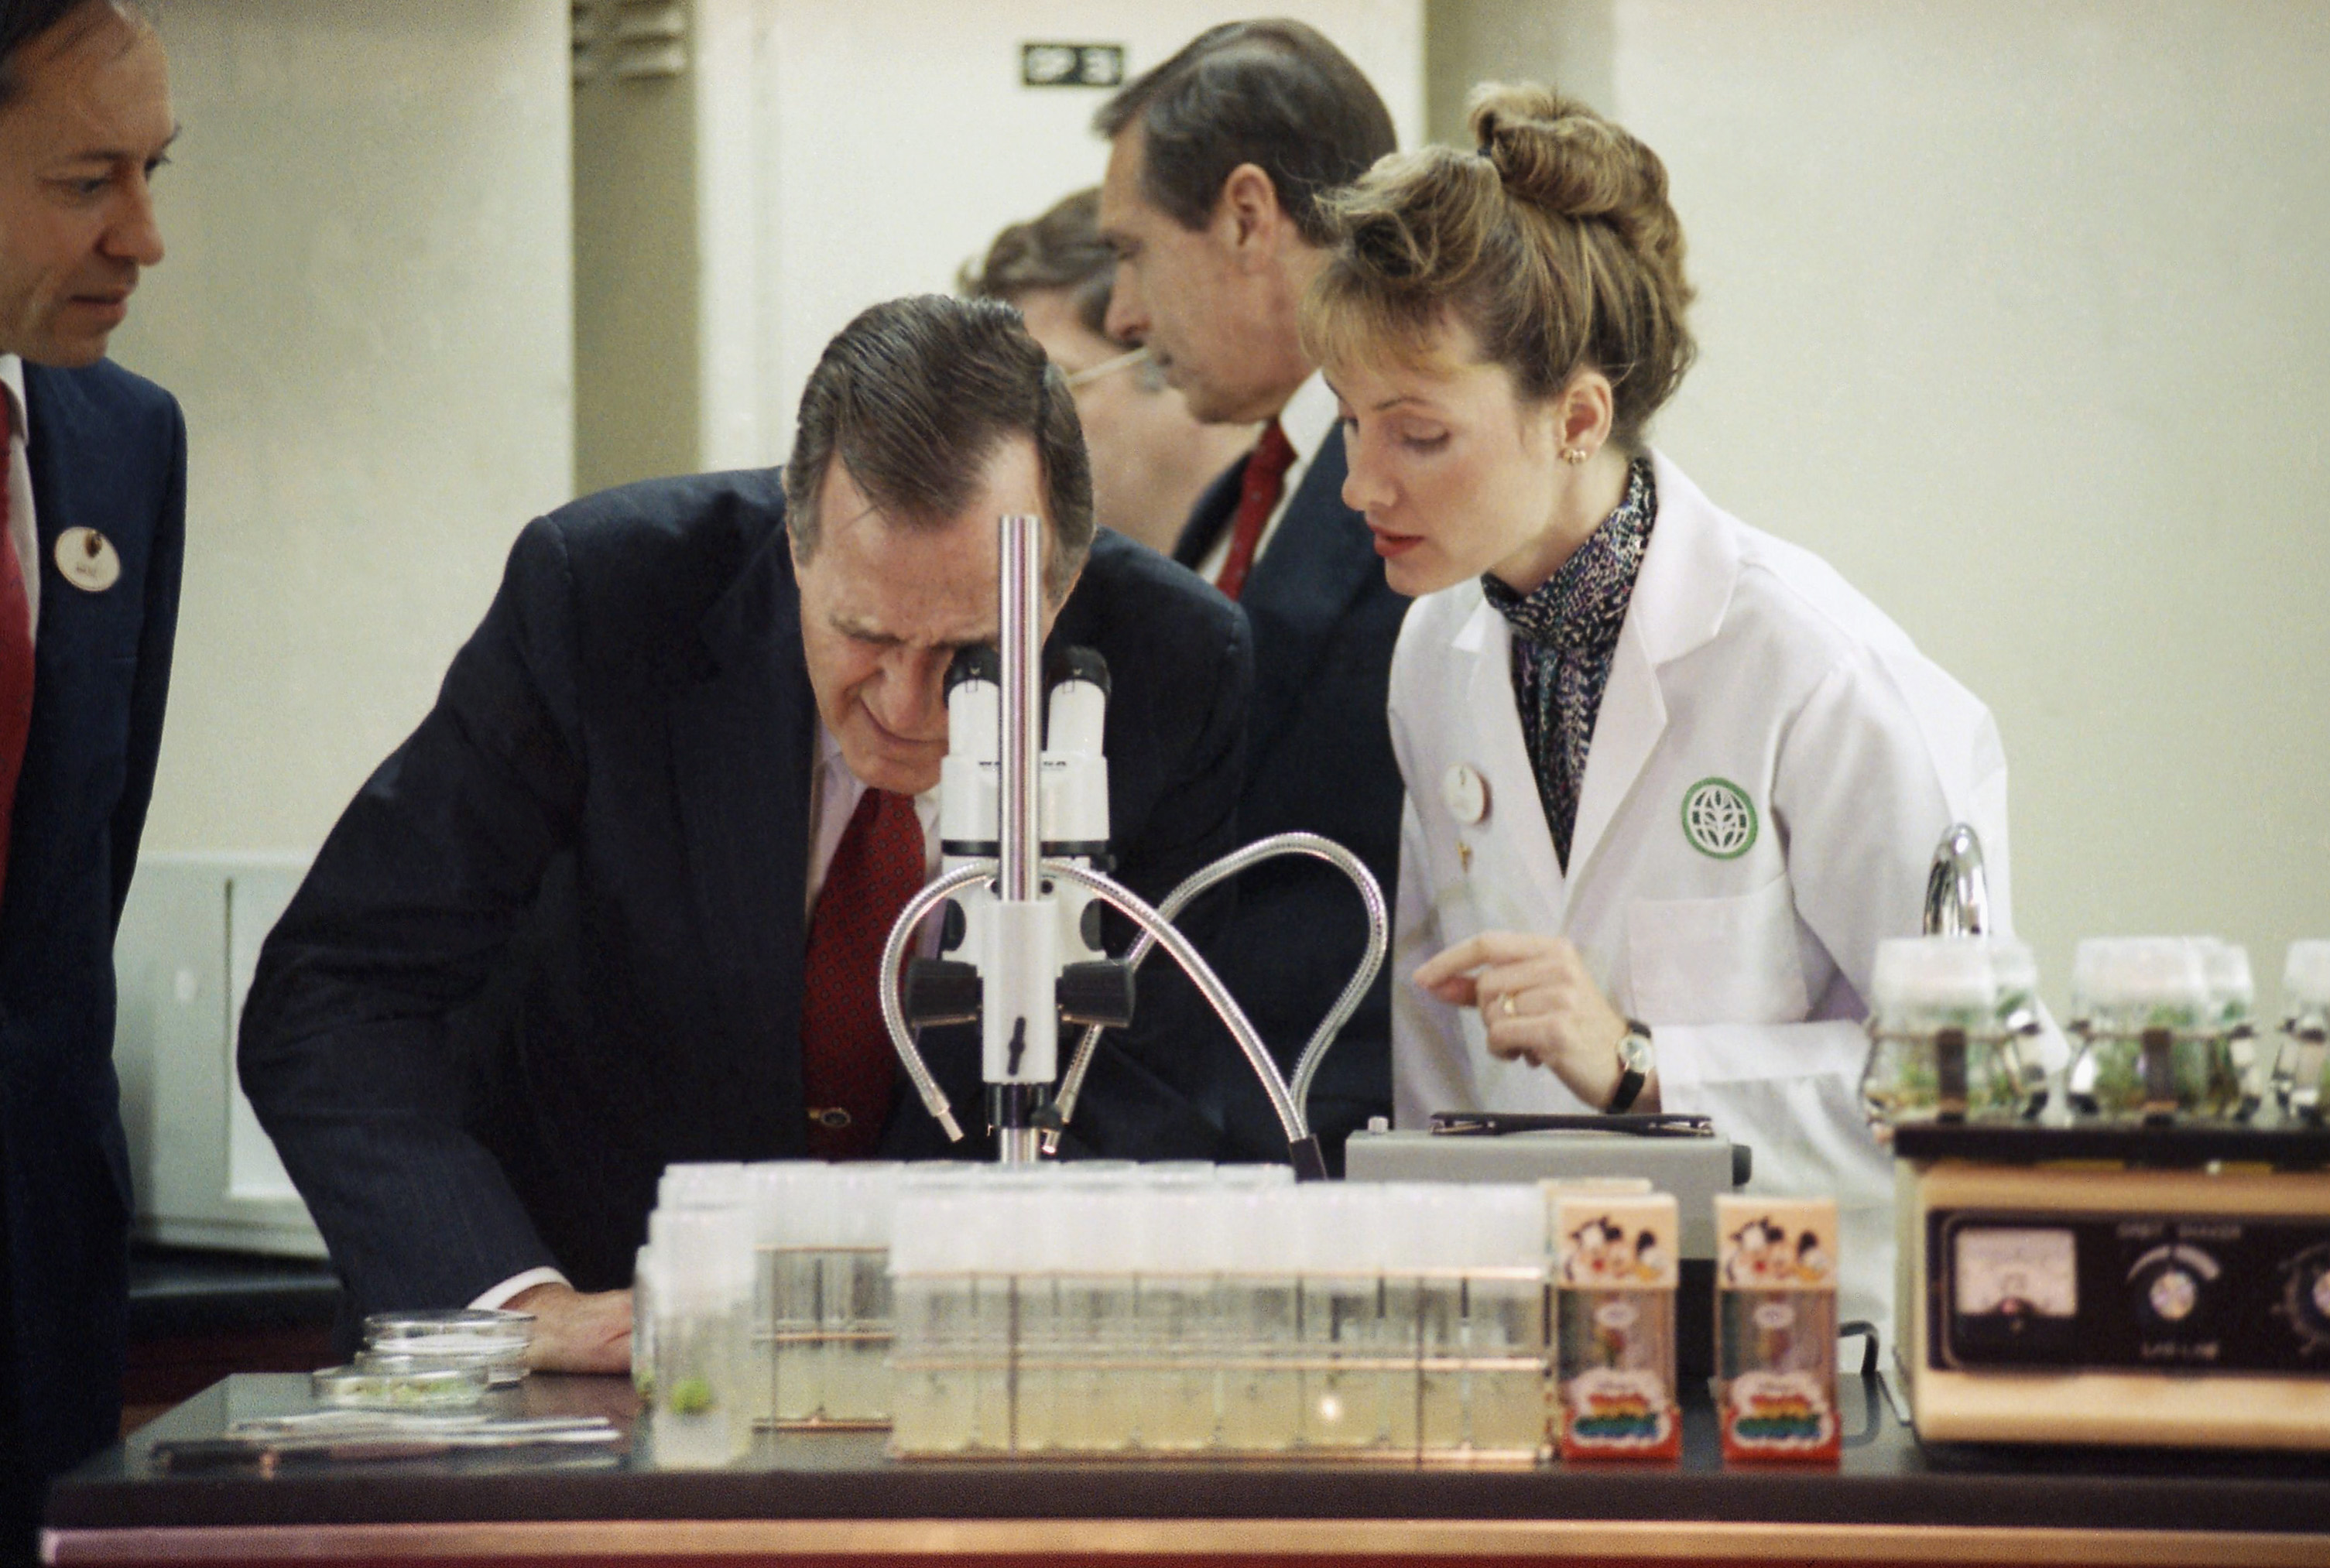 <div class='meta'><div class='origin-logo' data-origin='none'></div><span class='caption-text' data-credit='AP Photo/Barry Thumma'>President George H.W. Bush looks through a microscope as Dr. Lexie McKently, right, biotechnology research scientist at Disney World's Land Pavilion at Epcot Center.</span></div>